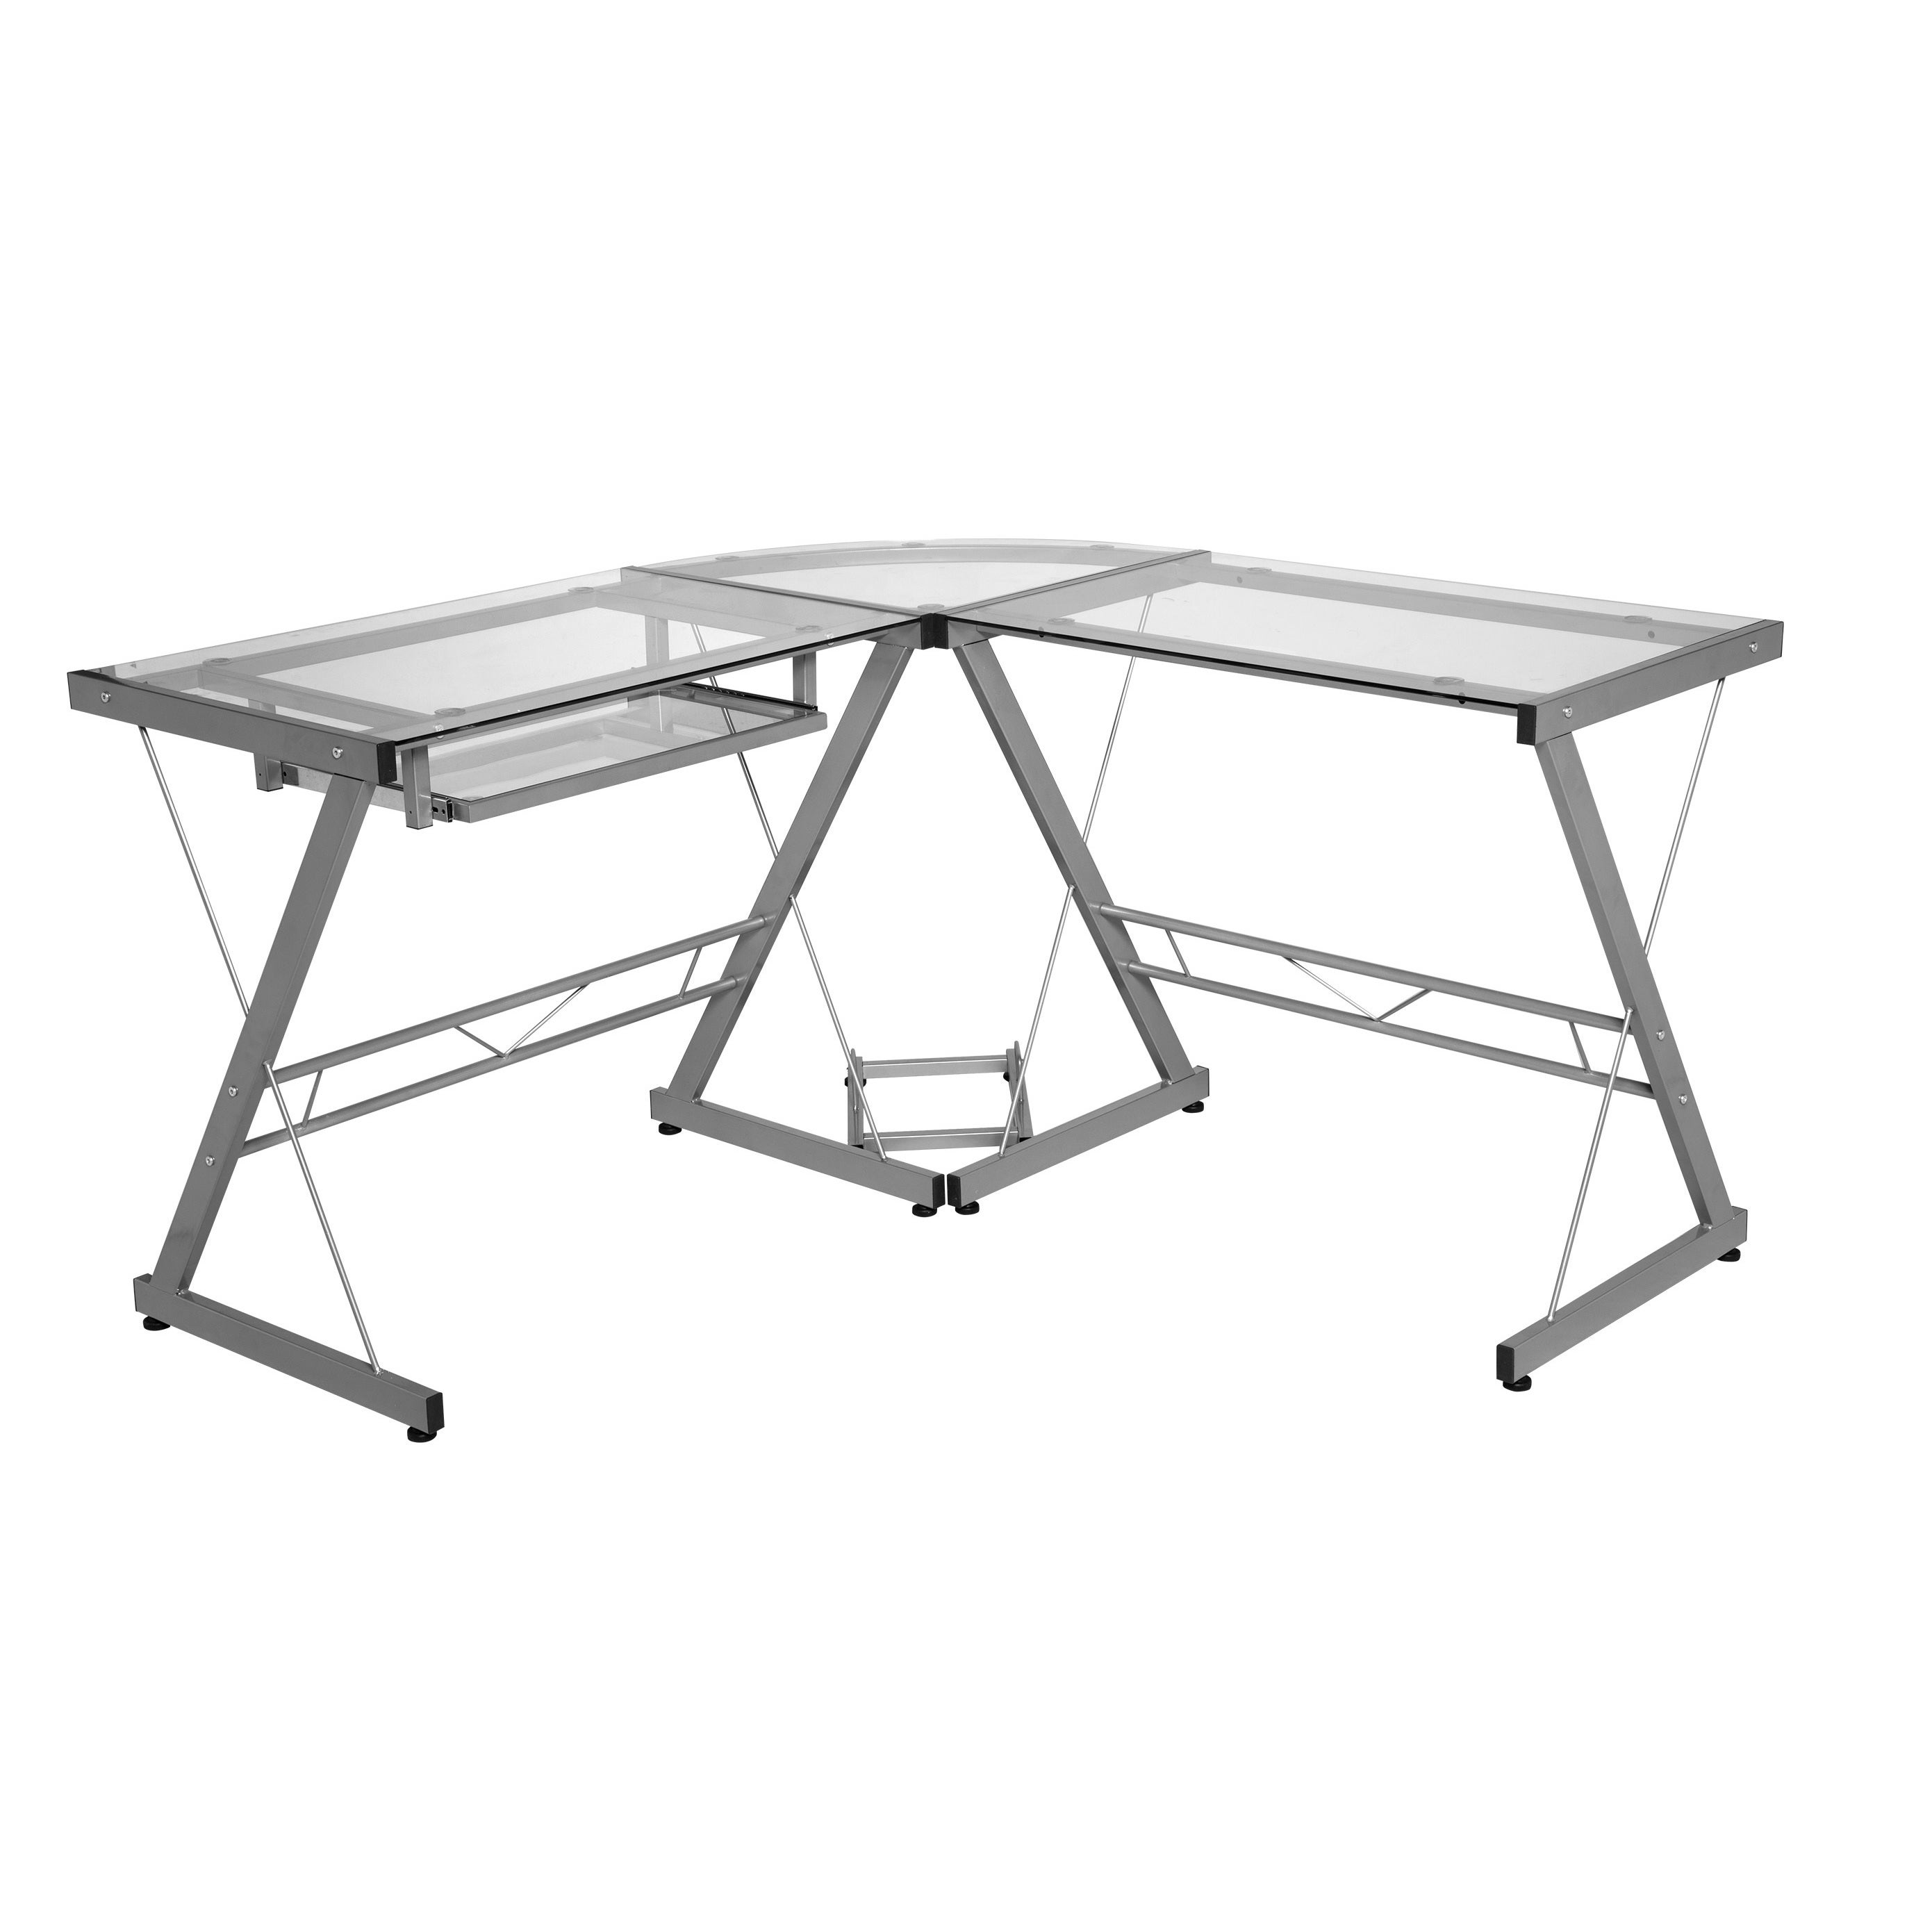 Shop One Space Silver And Clear Glass L Shape Desk With Pull Out Keyboard Tray Free Shipping Today Overstock 11998766